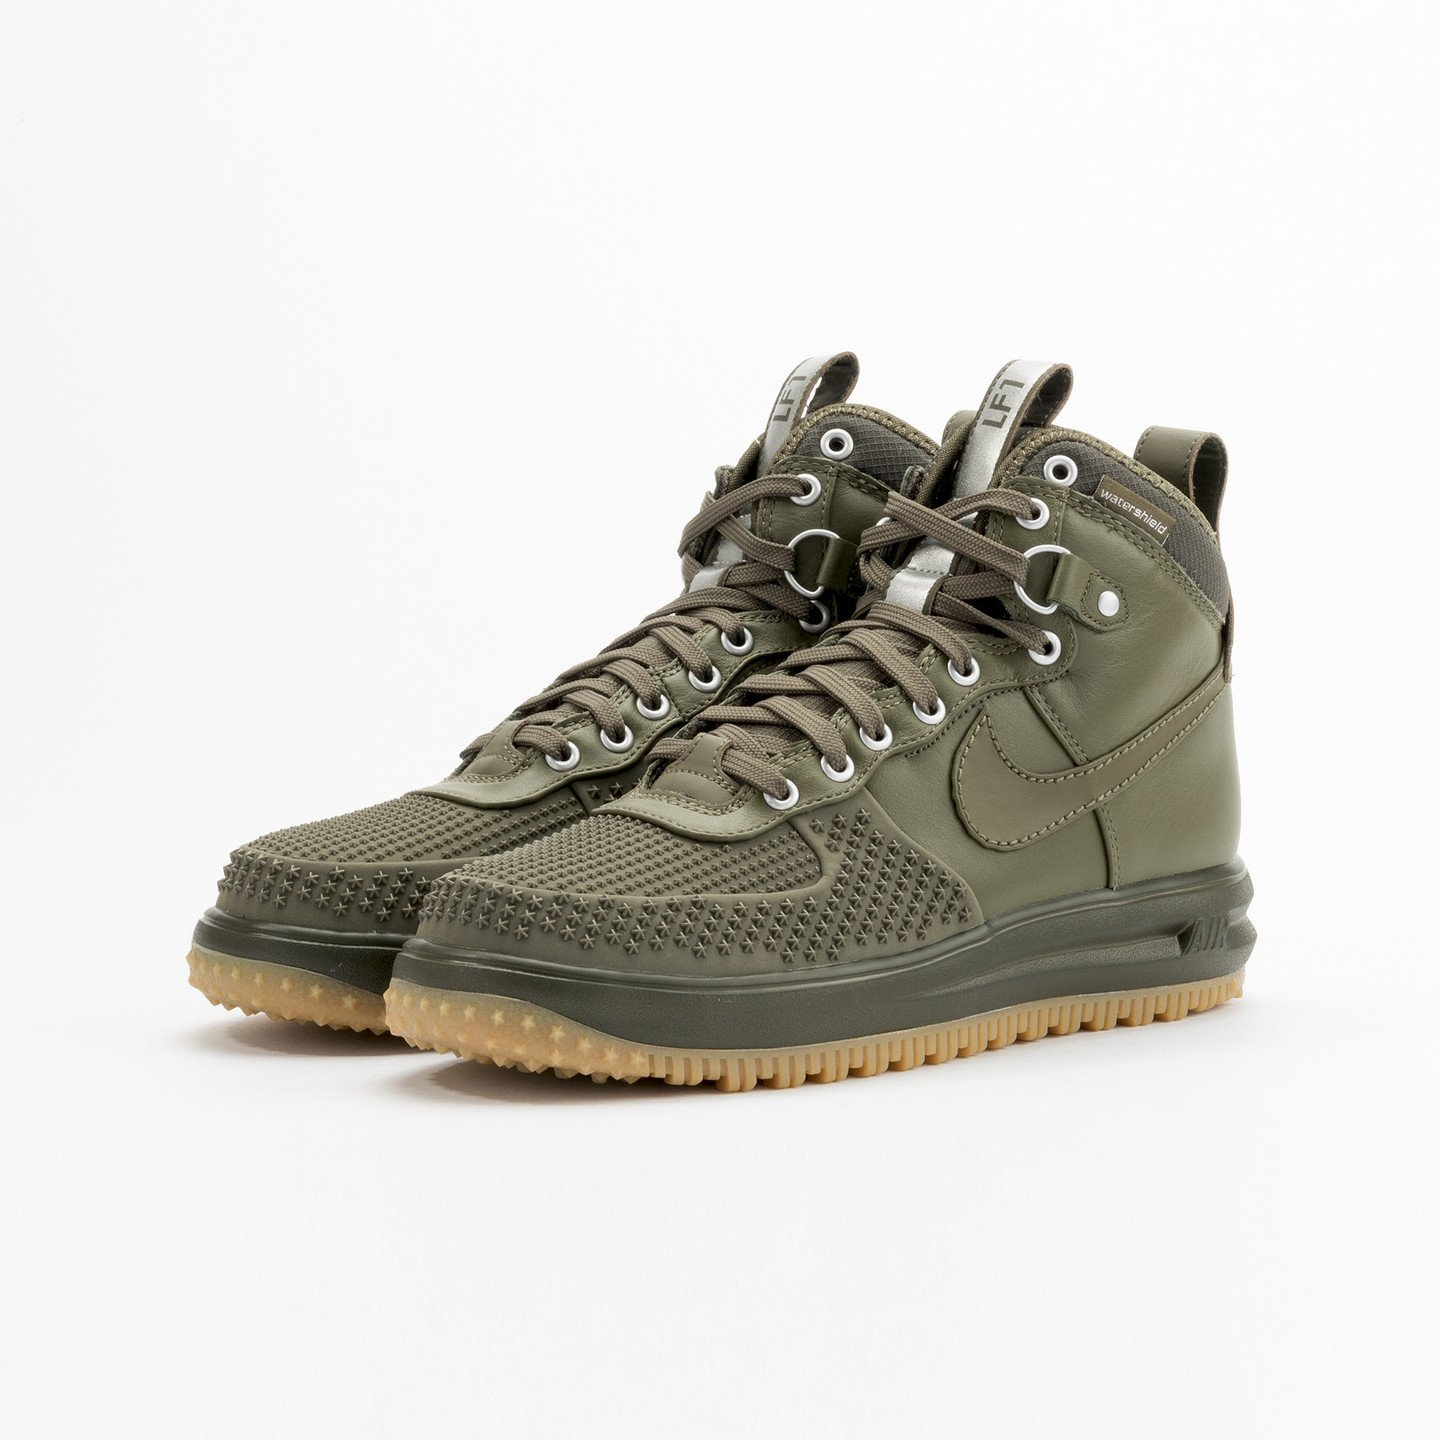 Nike Lunar Force 1 Duckboot Medium Olive / White 805899-201-45.5